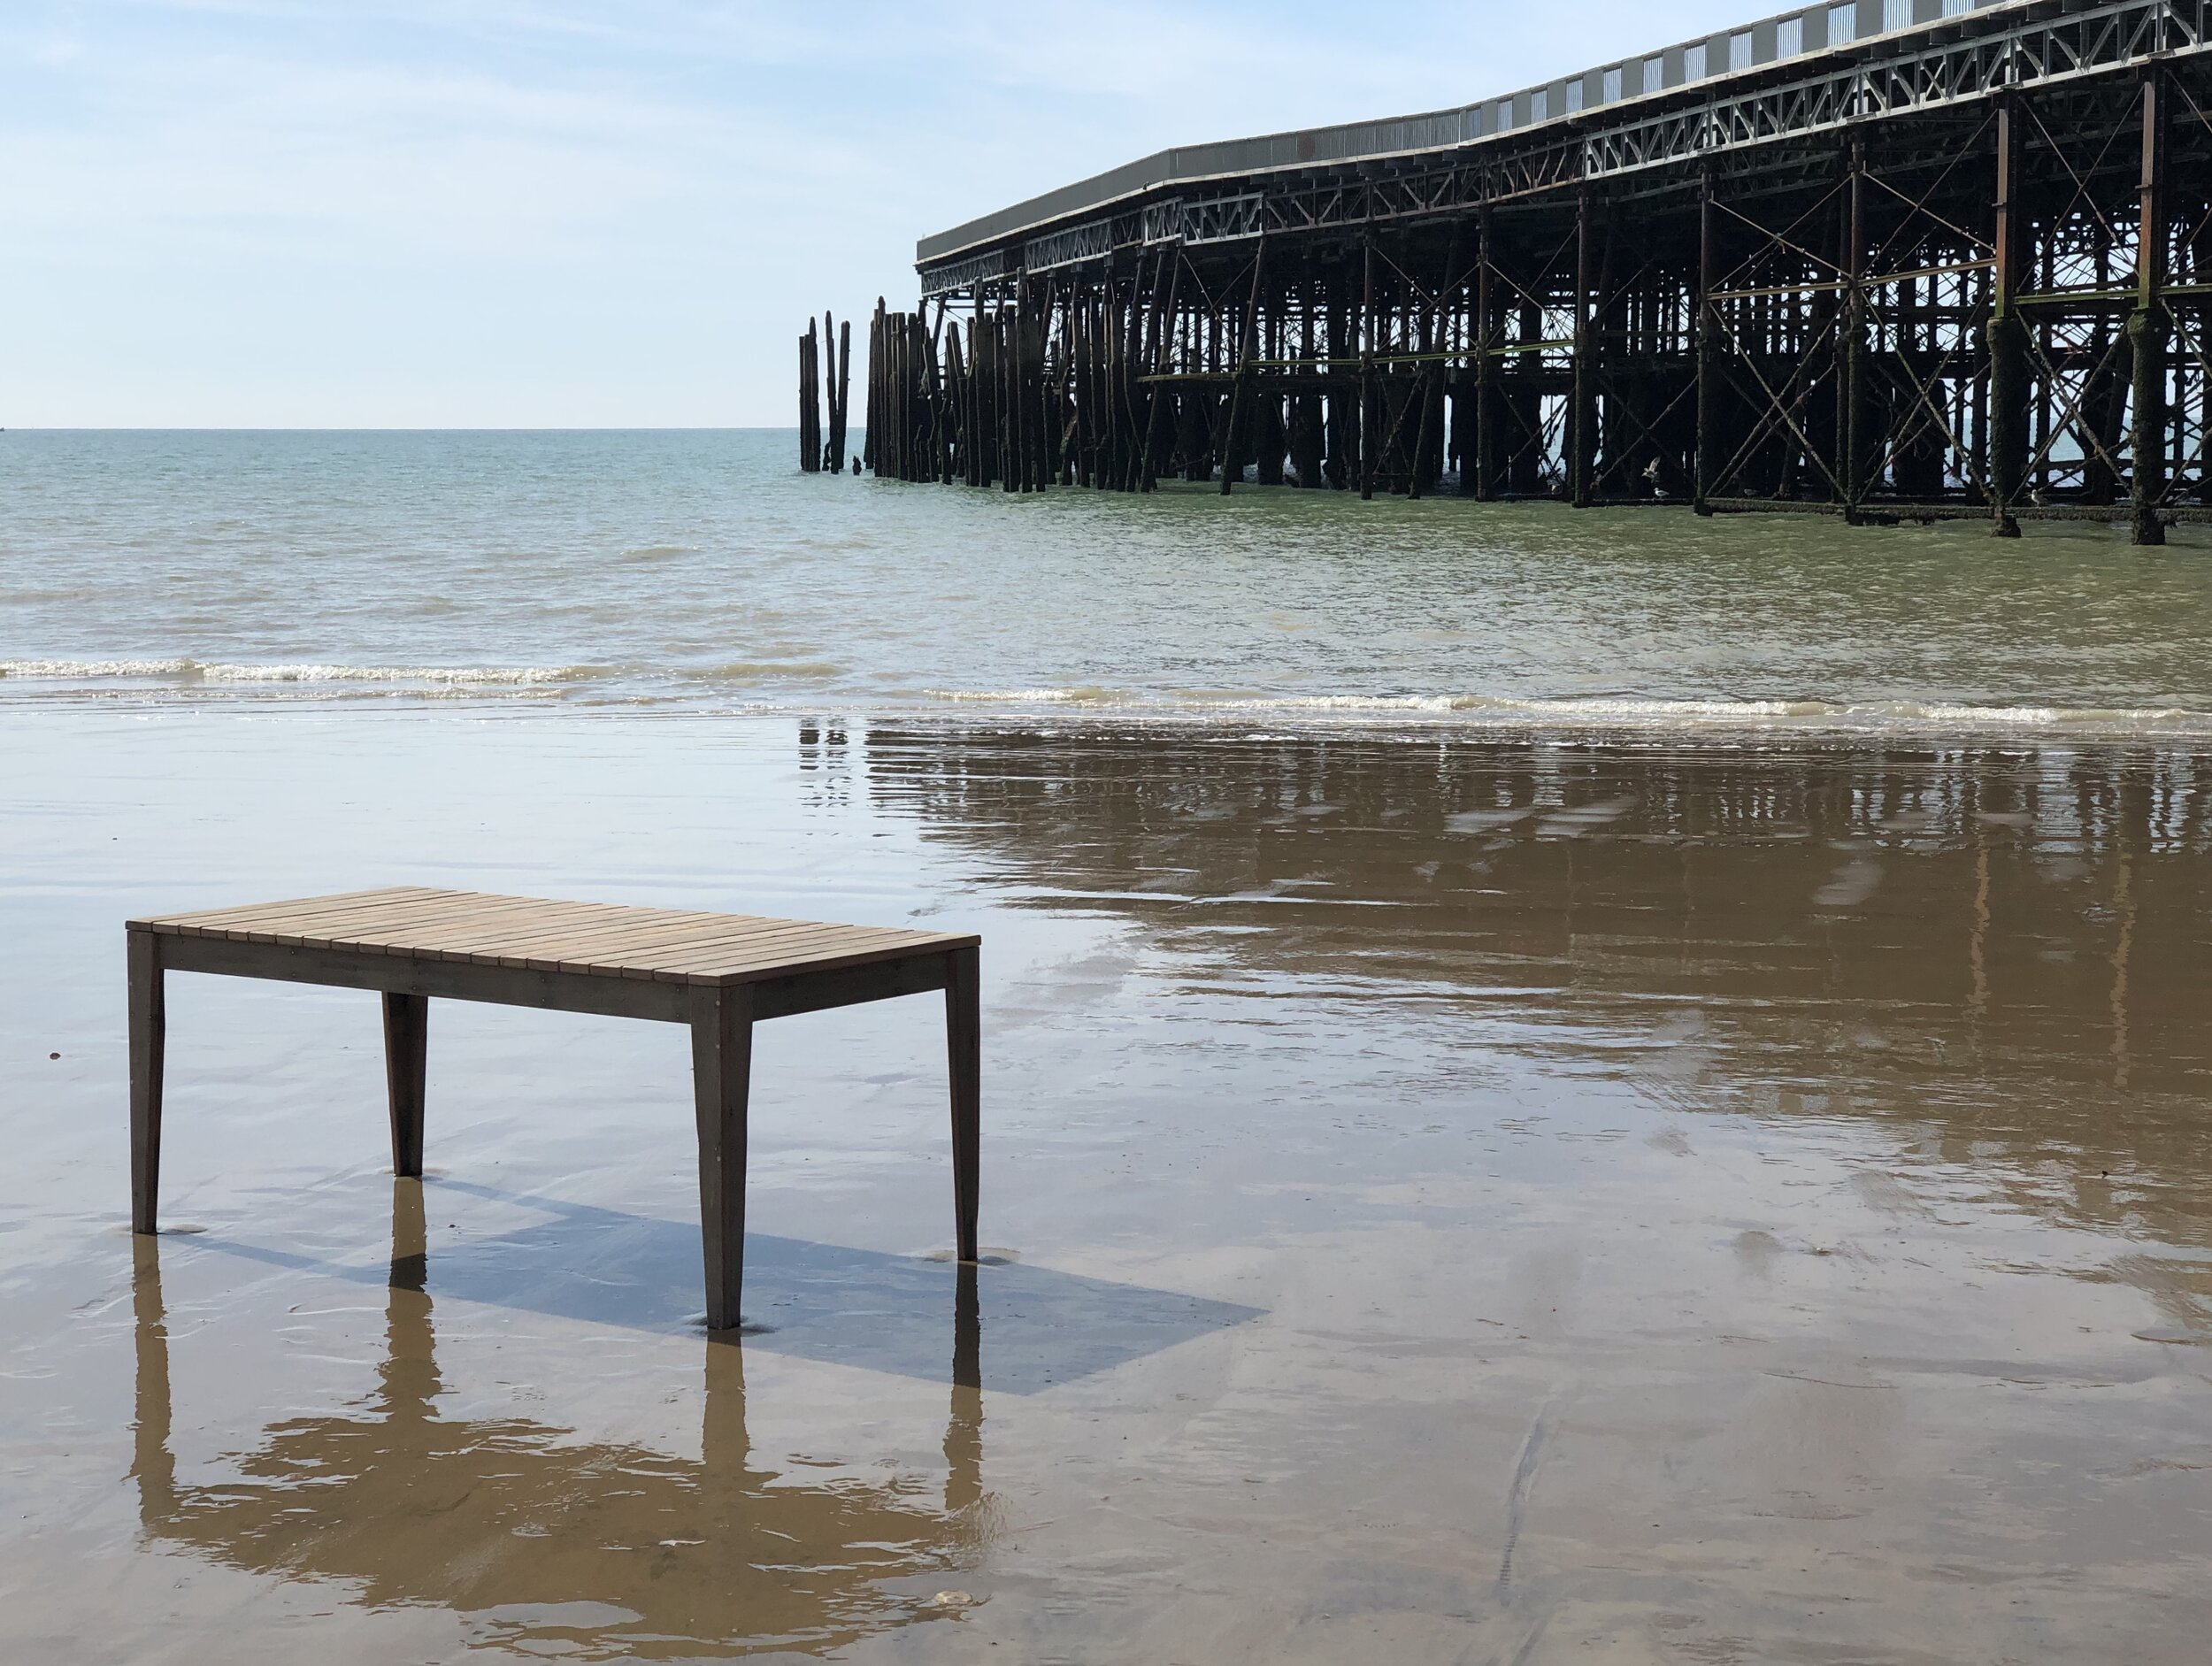 OUR QUALITY PROMISE - We pride ourselves on producing quality furniture that is hand-made in our Hastings workshop using interesting reclaimed materials such as timber from the original Hastings Pier.